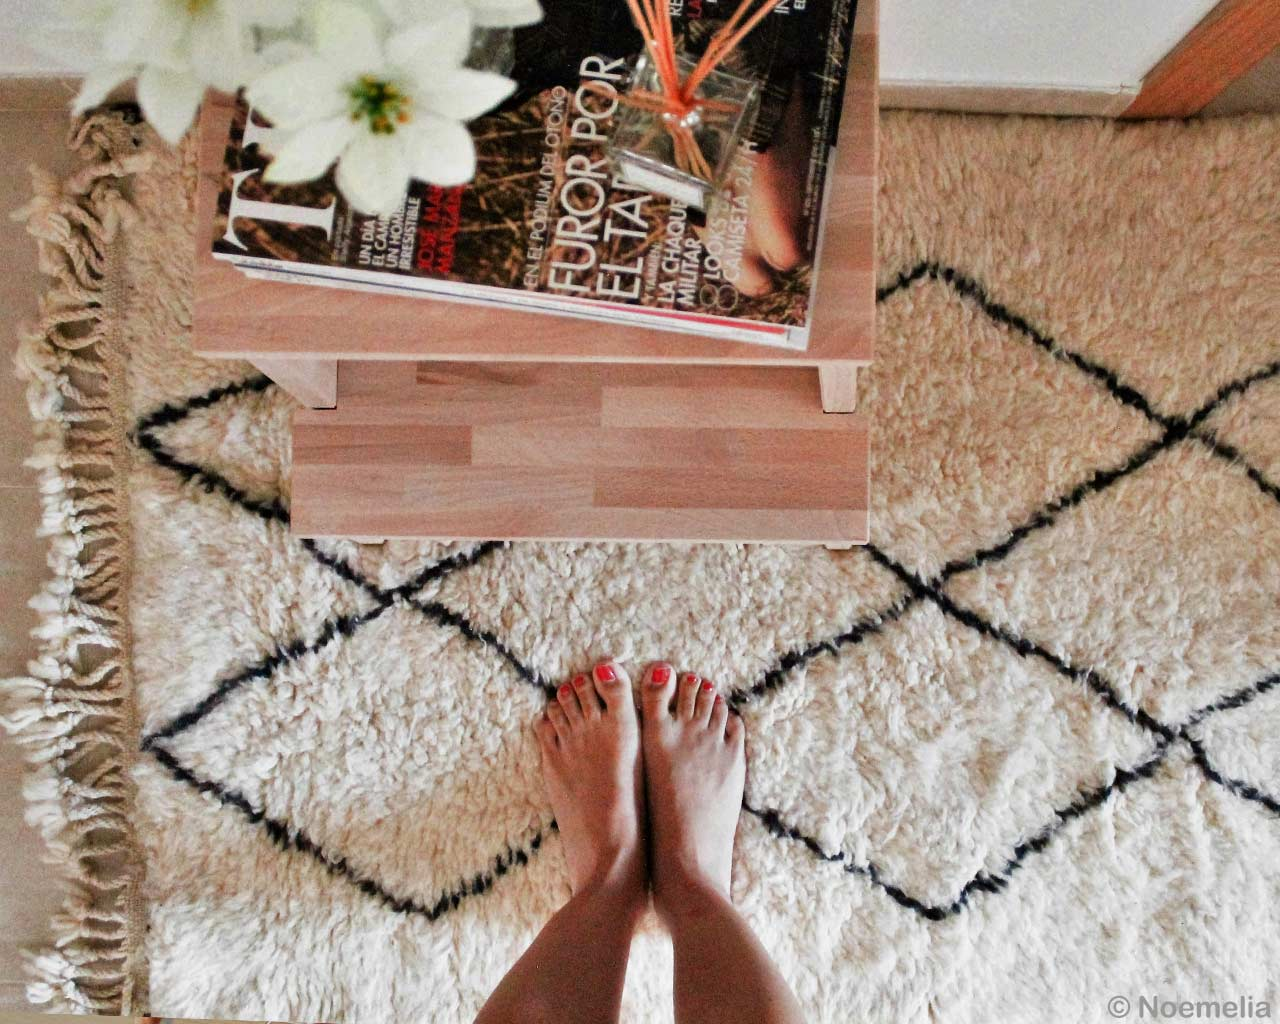 Naked Feet Moroccan Carpets Handmade Magazine Wooden Table 2